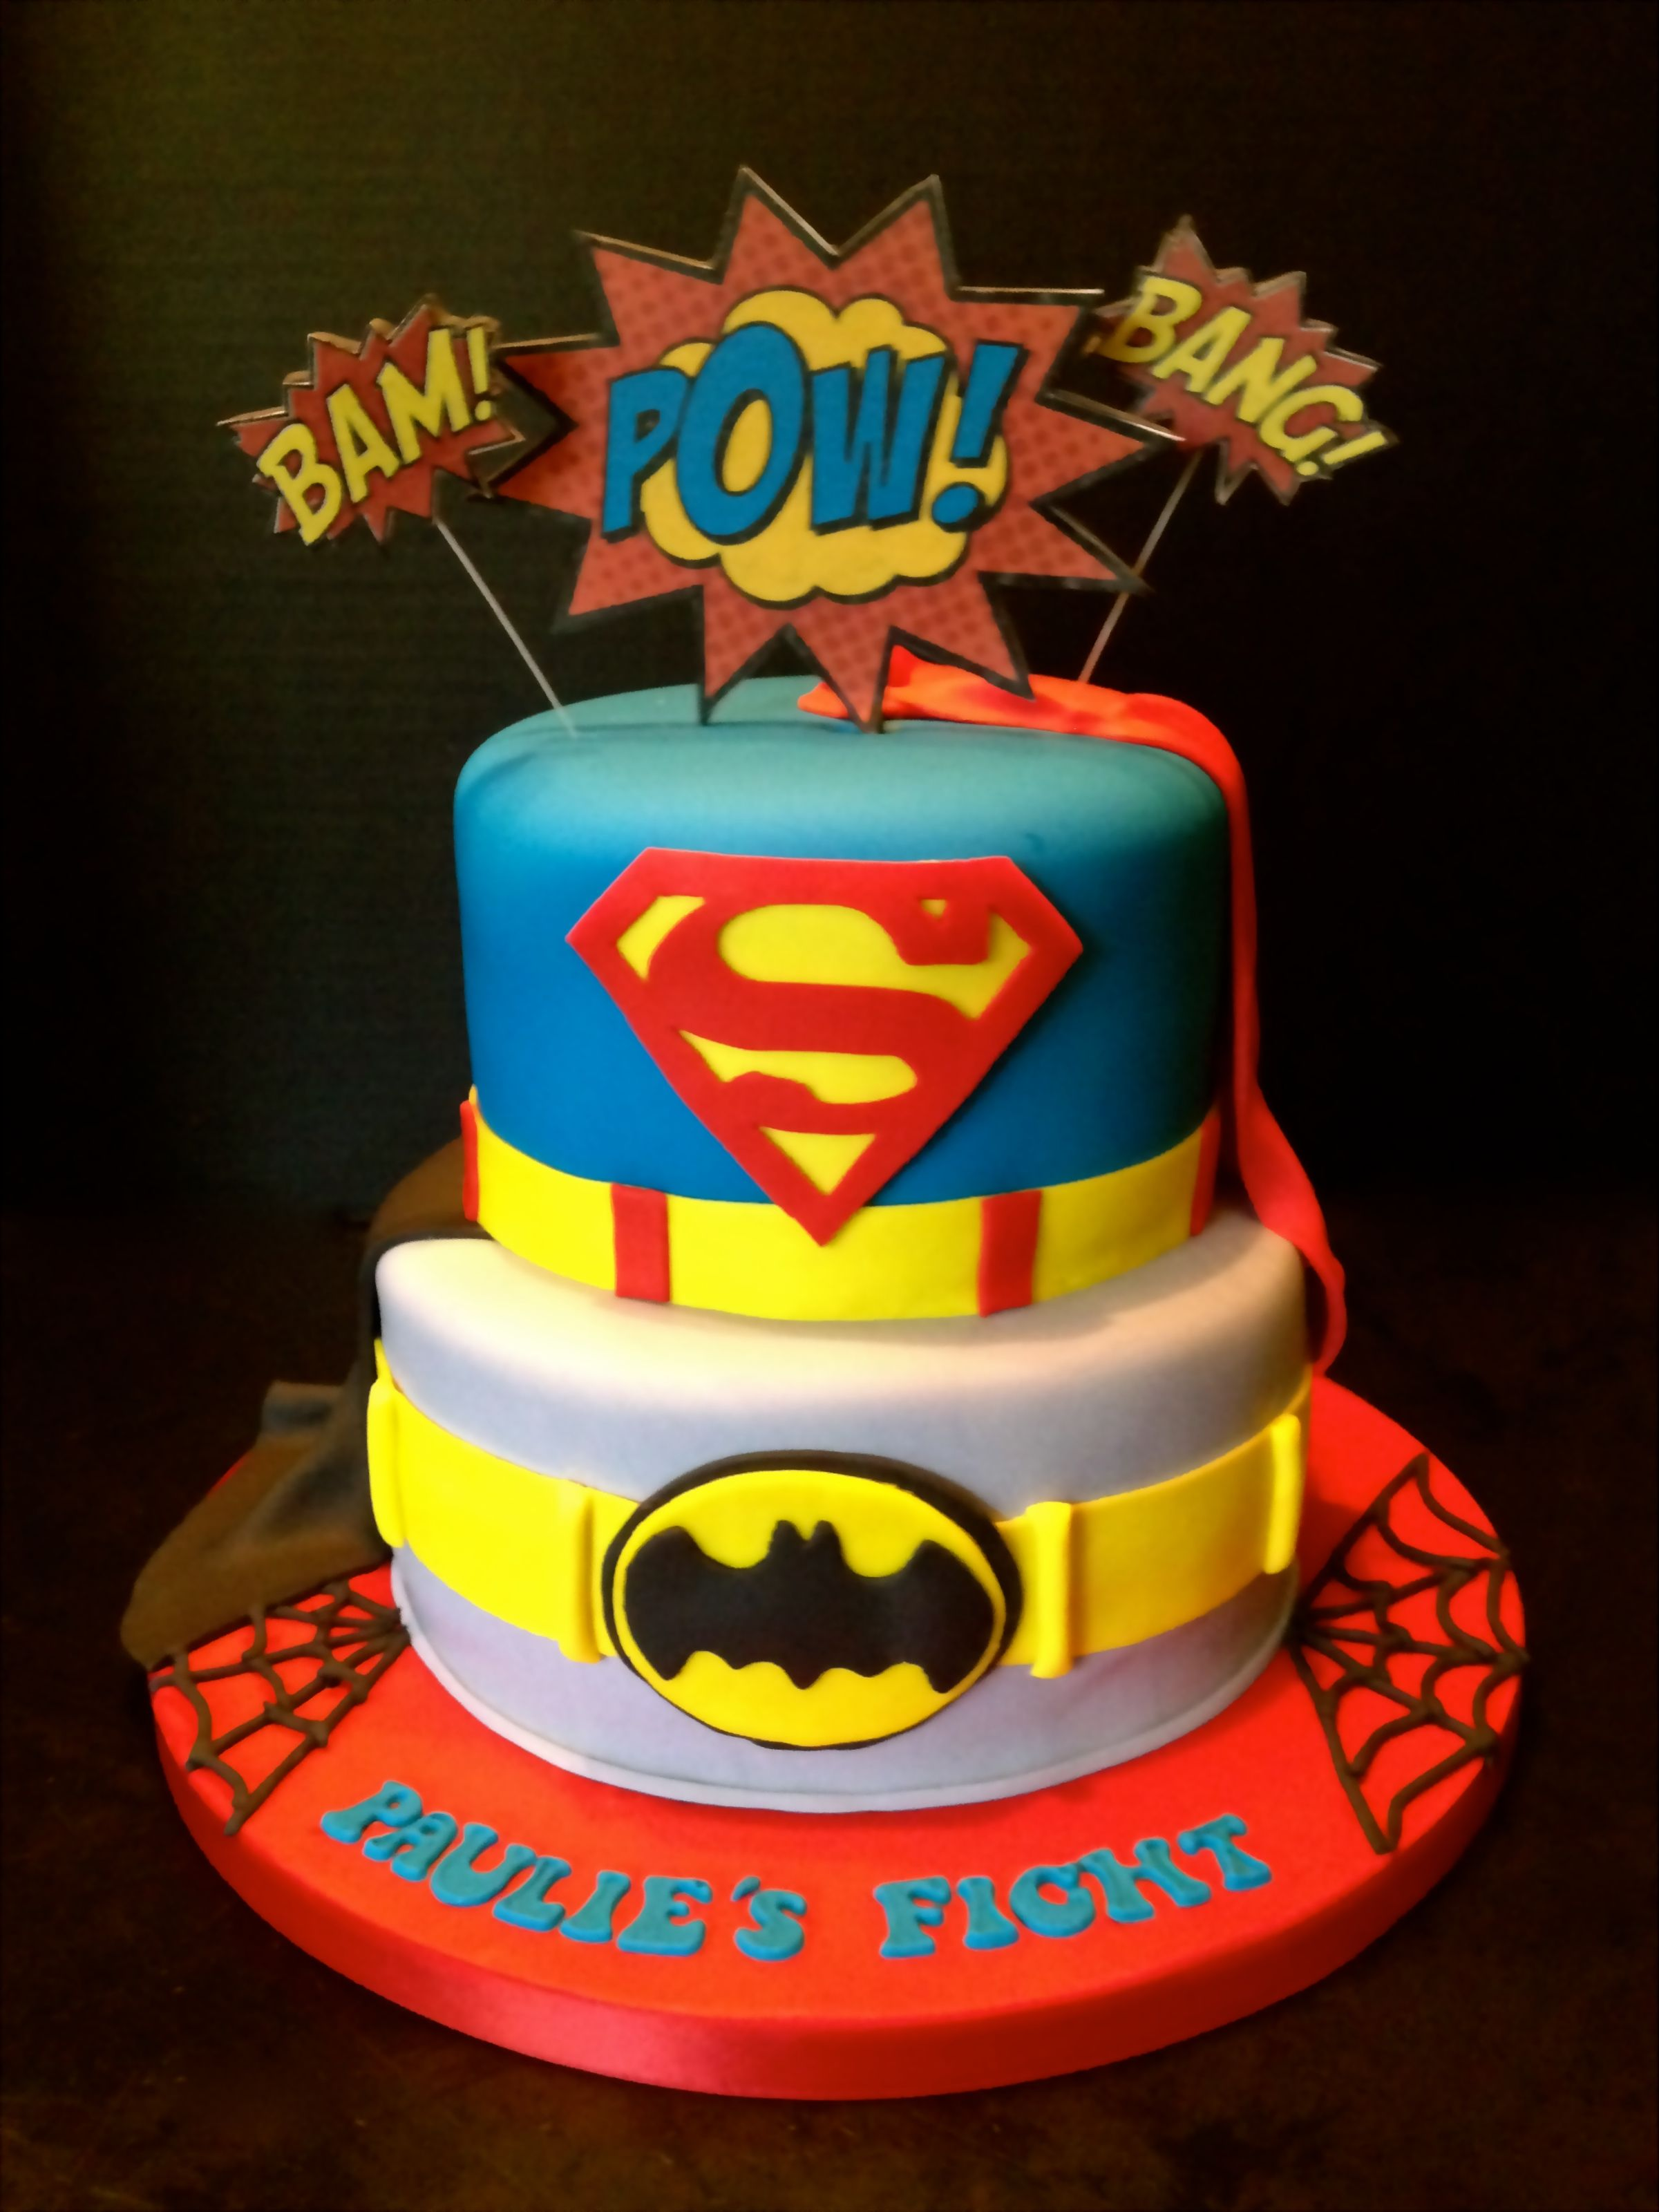 2 Year Birthday Ideas Batman Birthday Cake Batman Birthday Cake For A 2 Year Old Boy